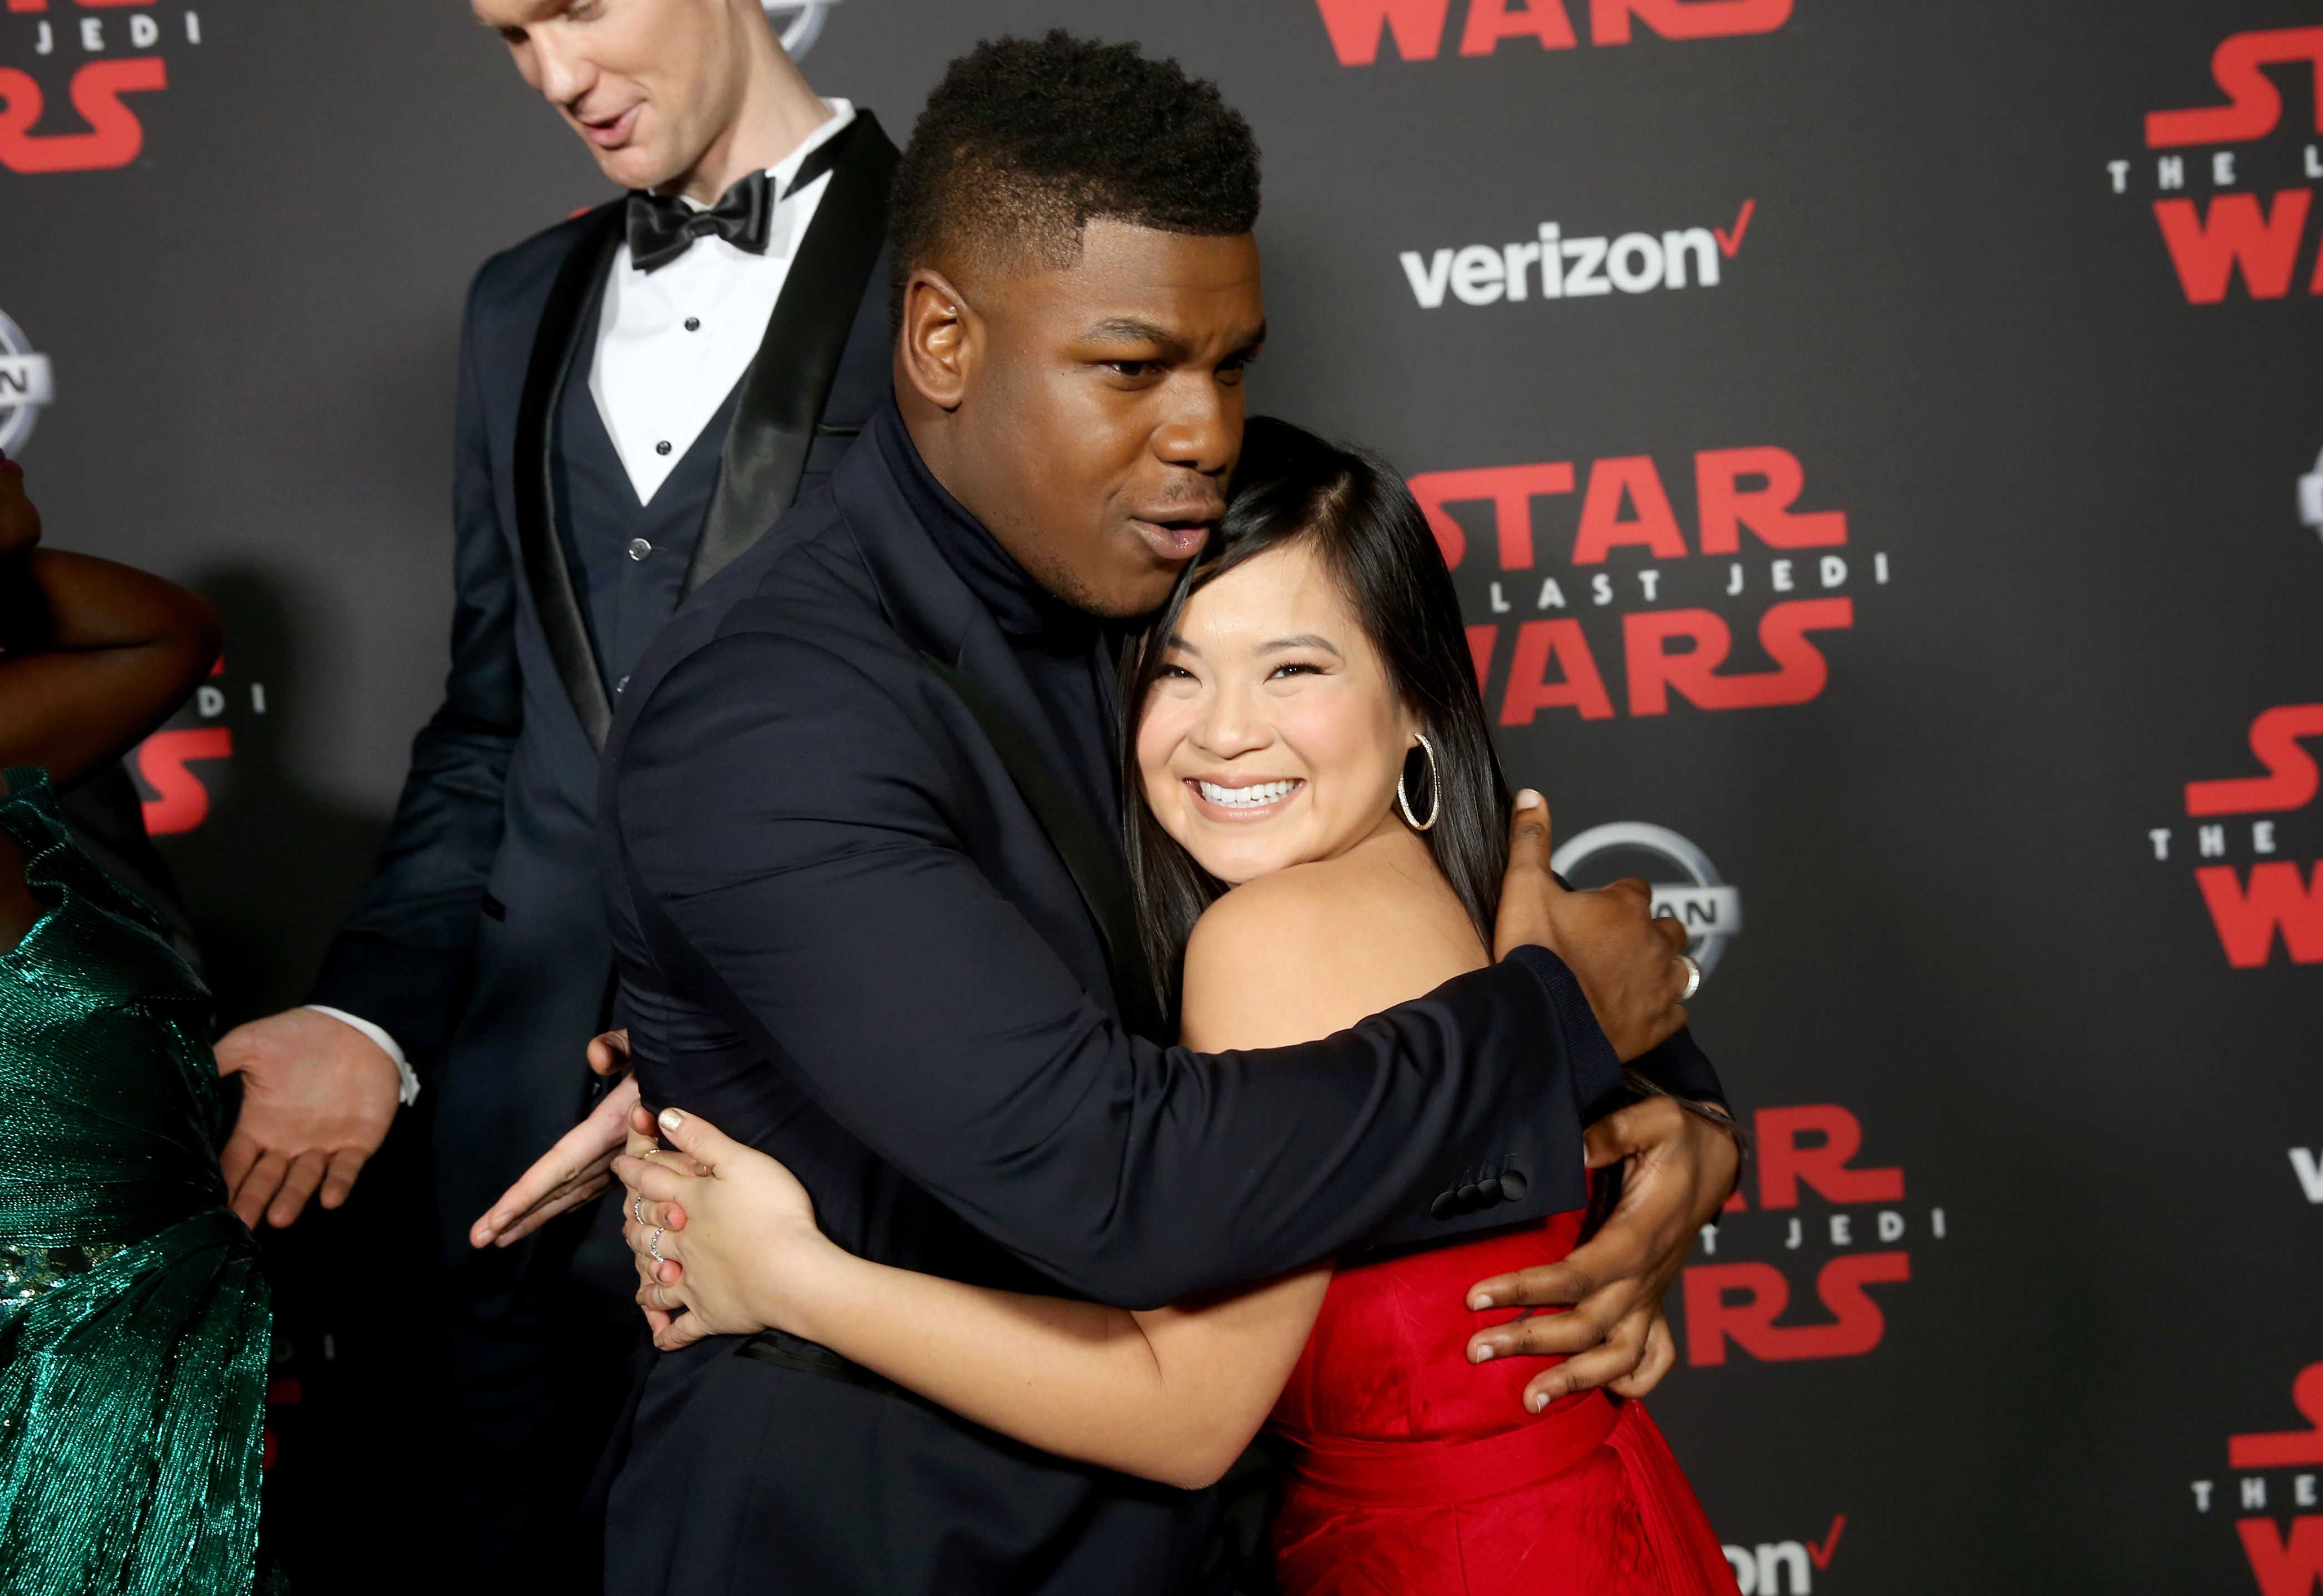 Star Wars' John Boyega apologises over Kelly Marie Tran interview comments